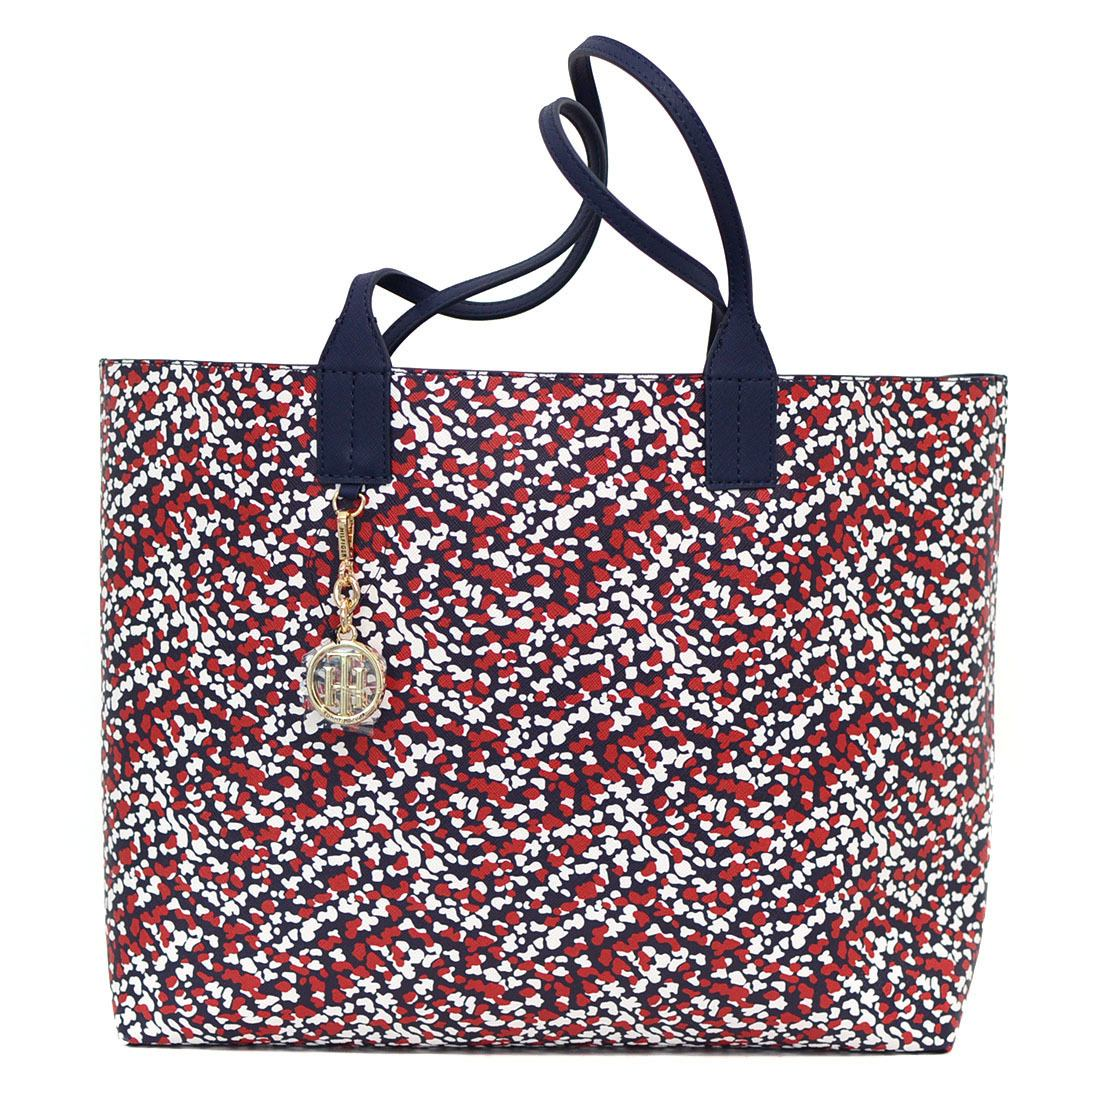 77241f0f230 bolsa tommy hilfiger tote reversible. Cargando zoom.